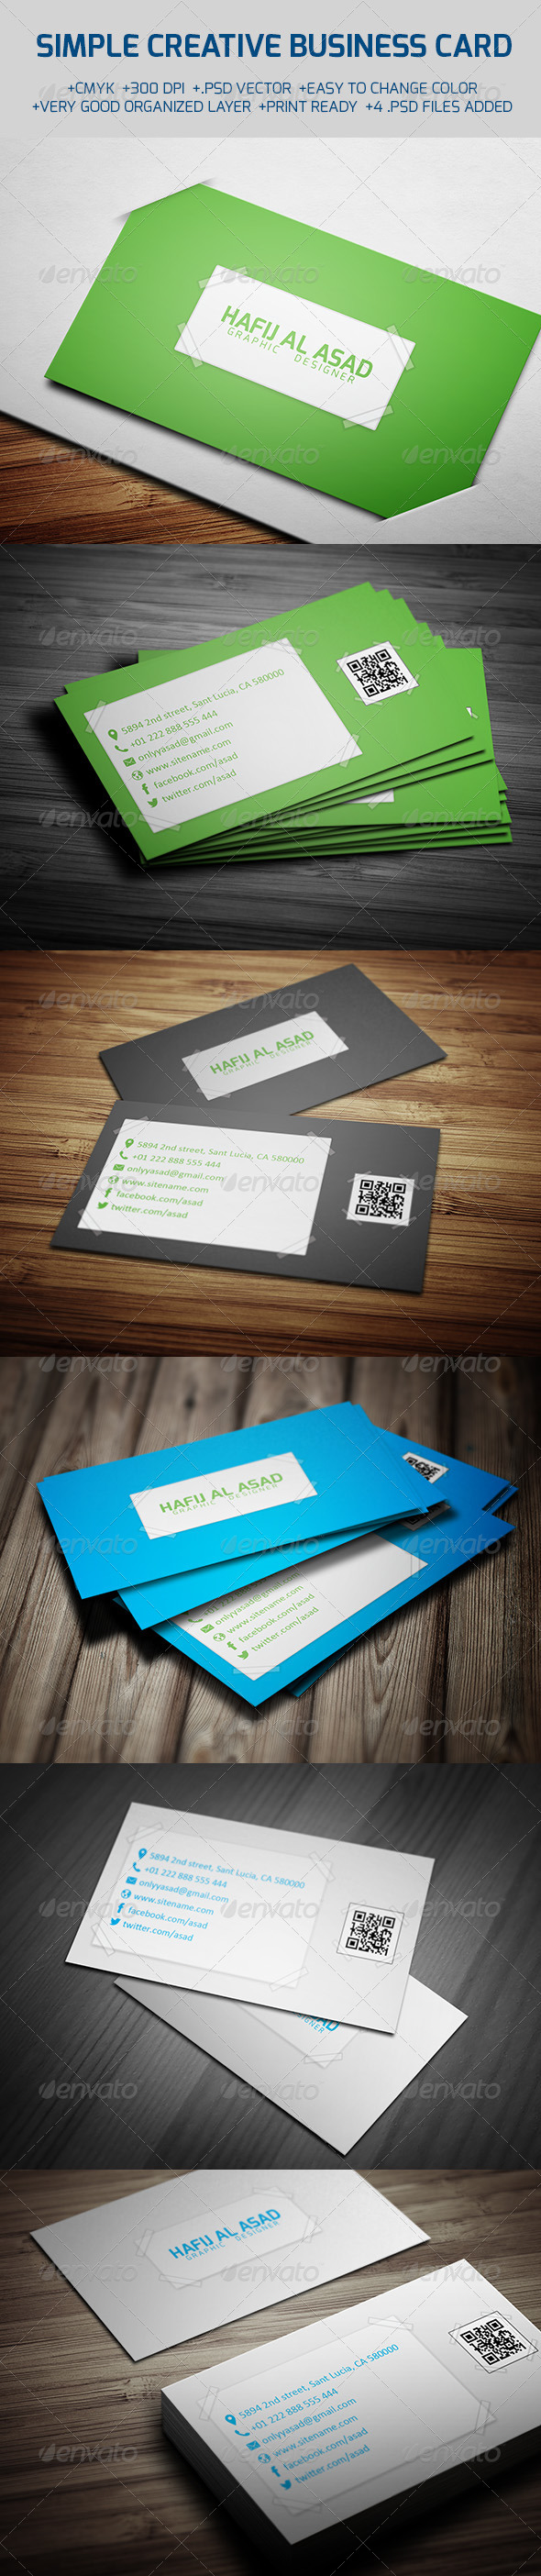 GraphicRiver Simple Creative Business Card 6197182